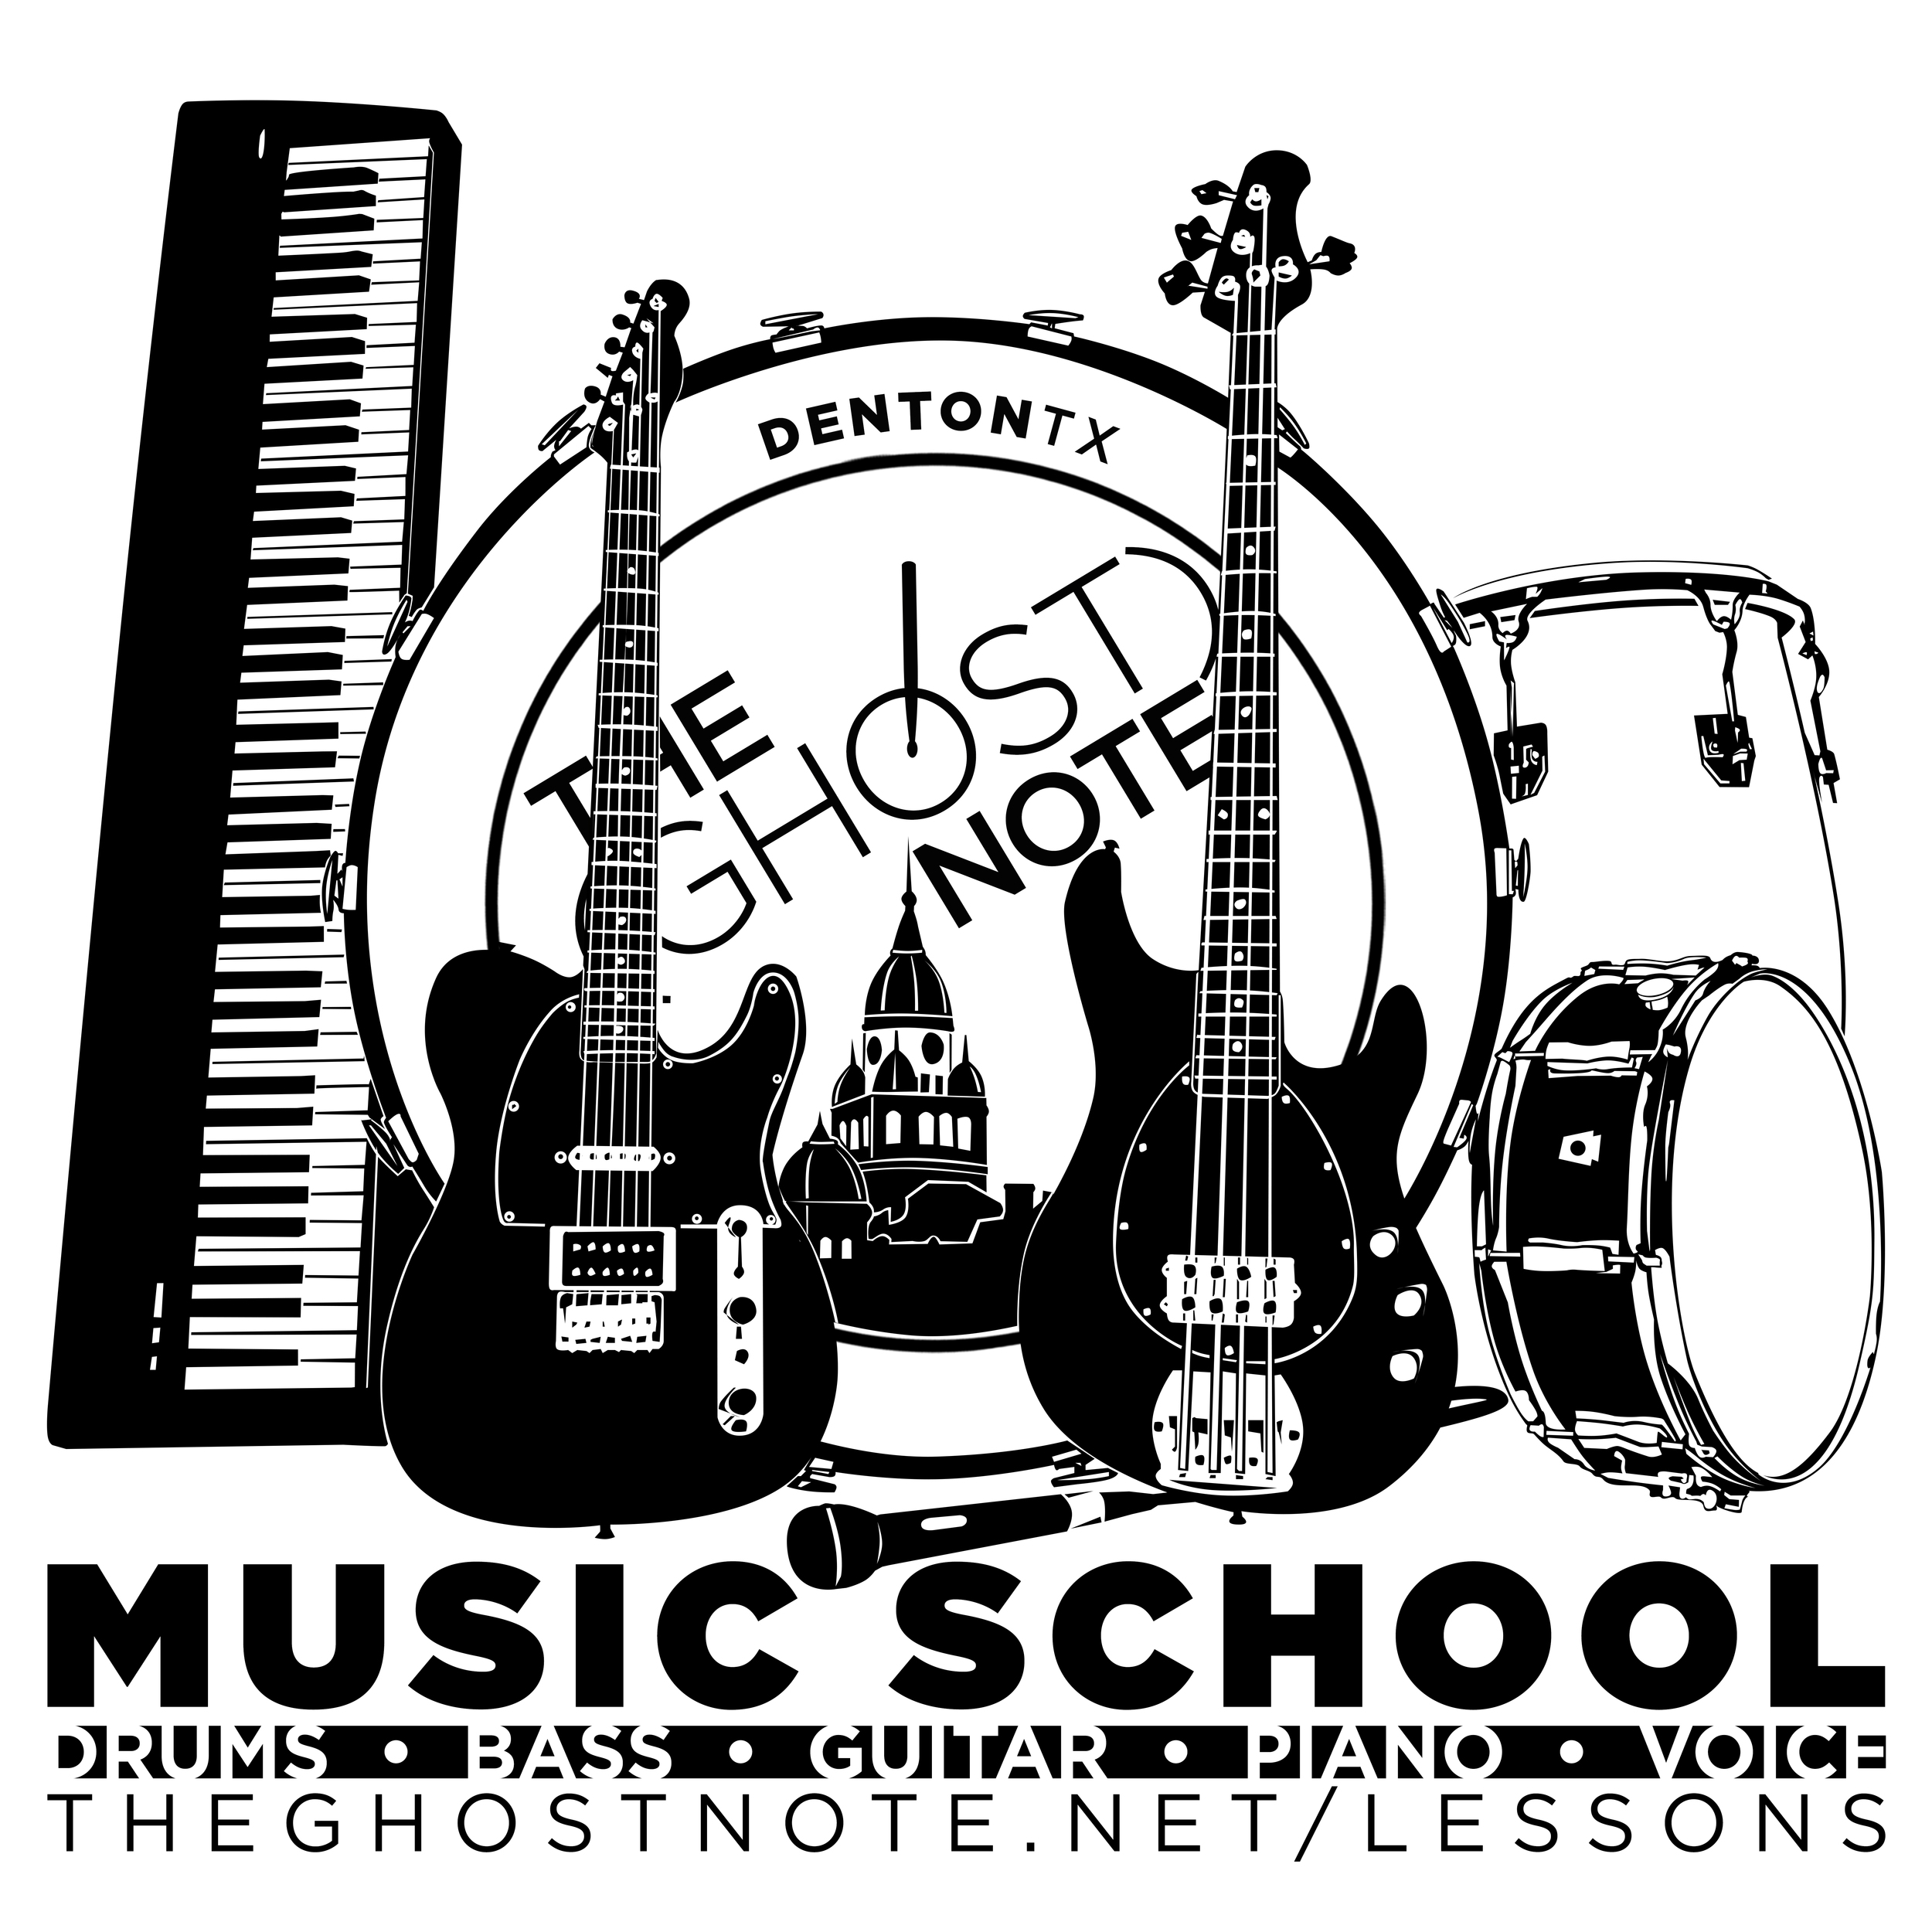 The (Ghost) Note Music School - Denton, TX - Private Lessons Drums Guitar Bass Piano Voice